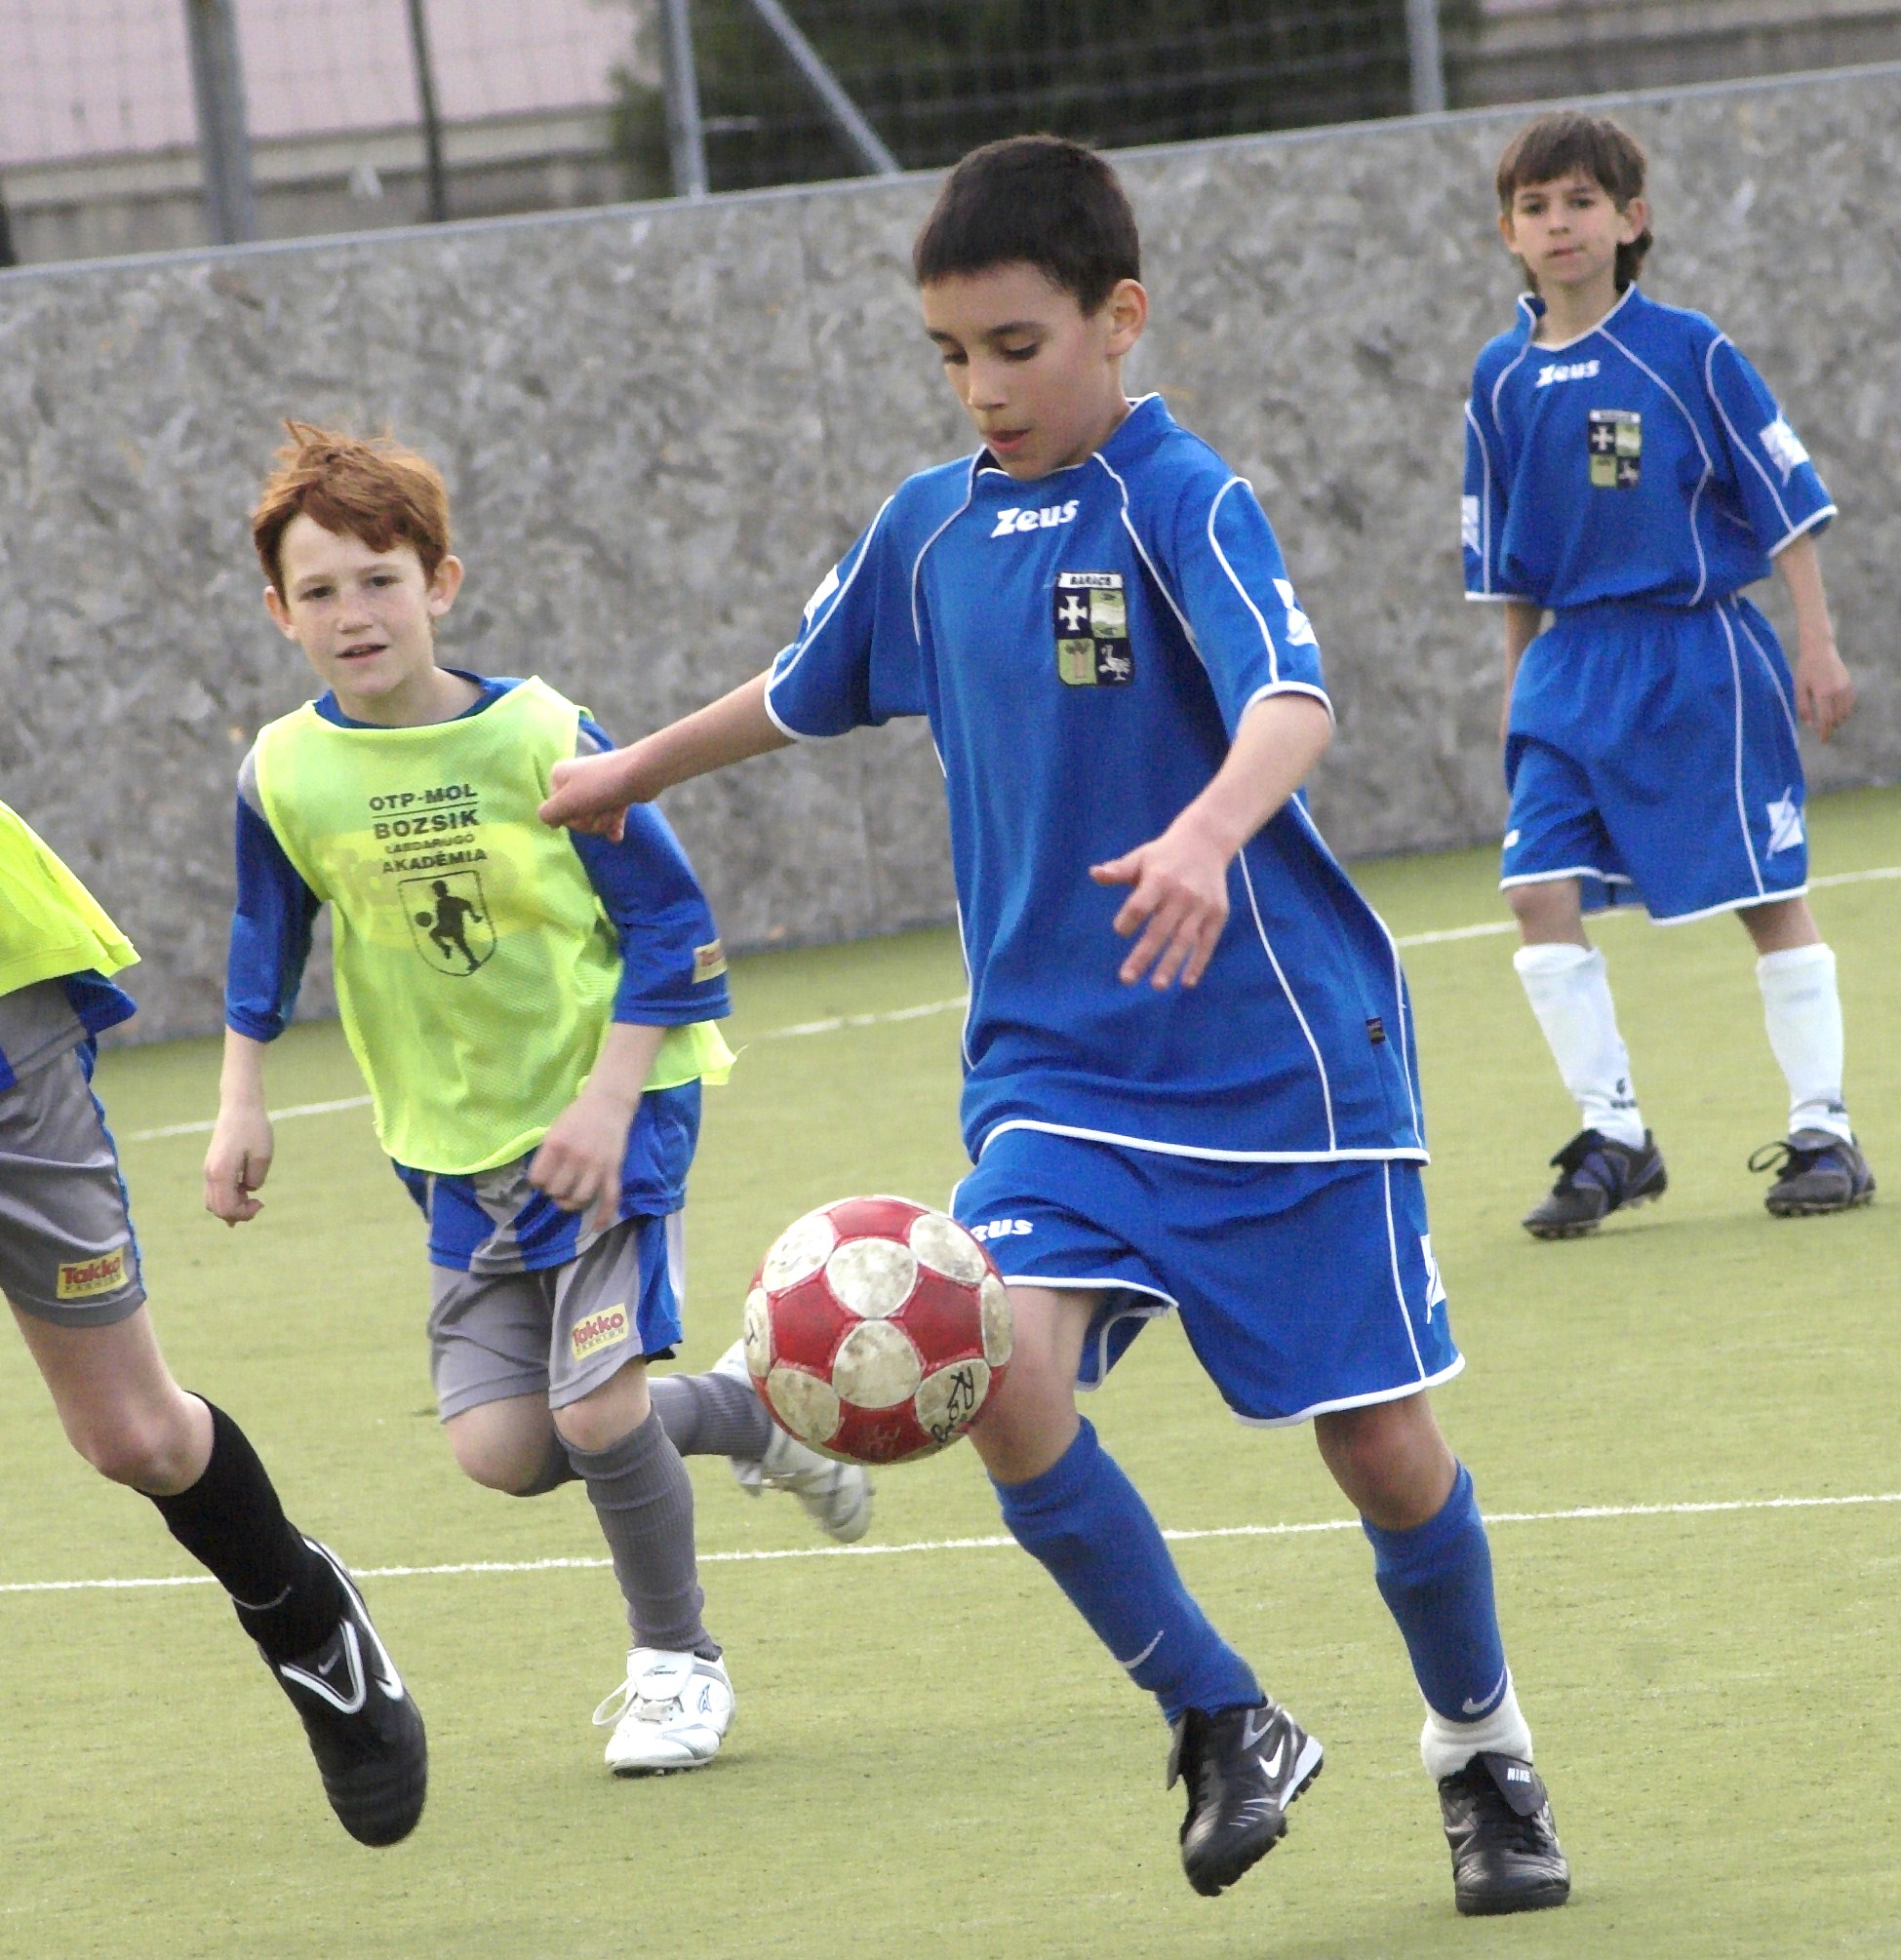 What should your child gain from playing sports? - The ...